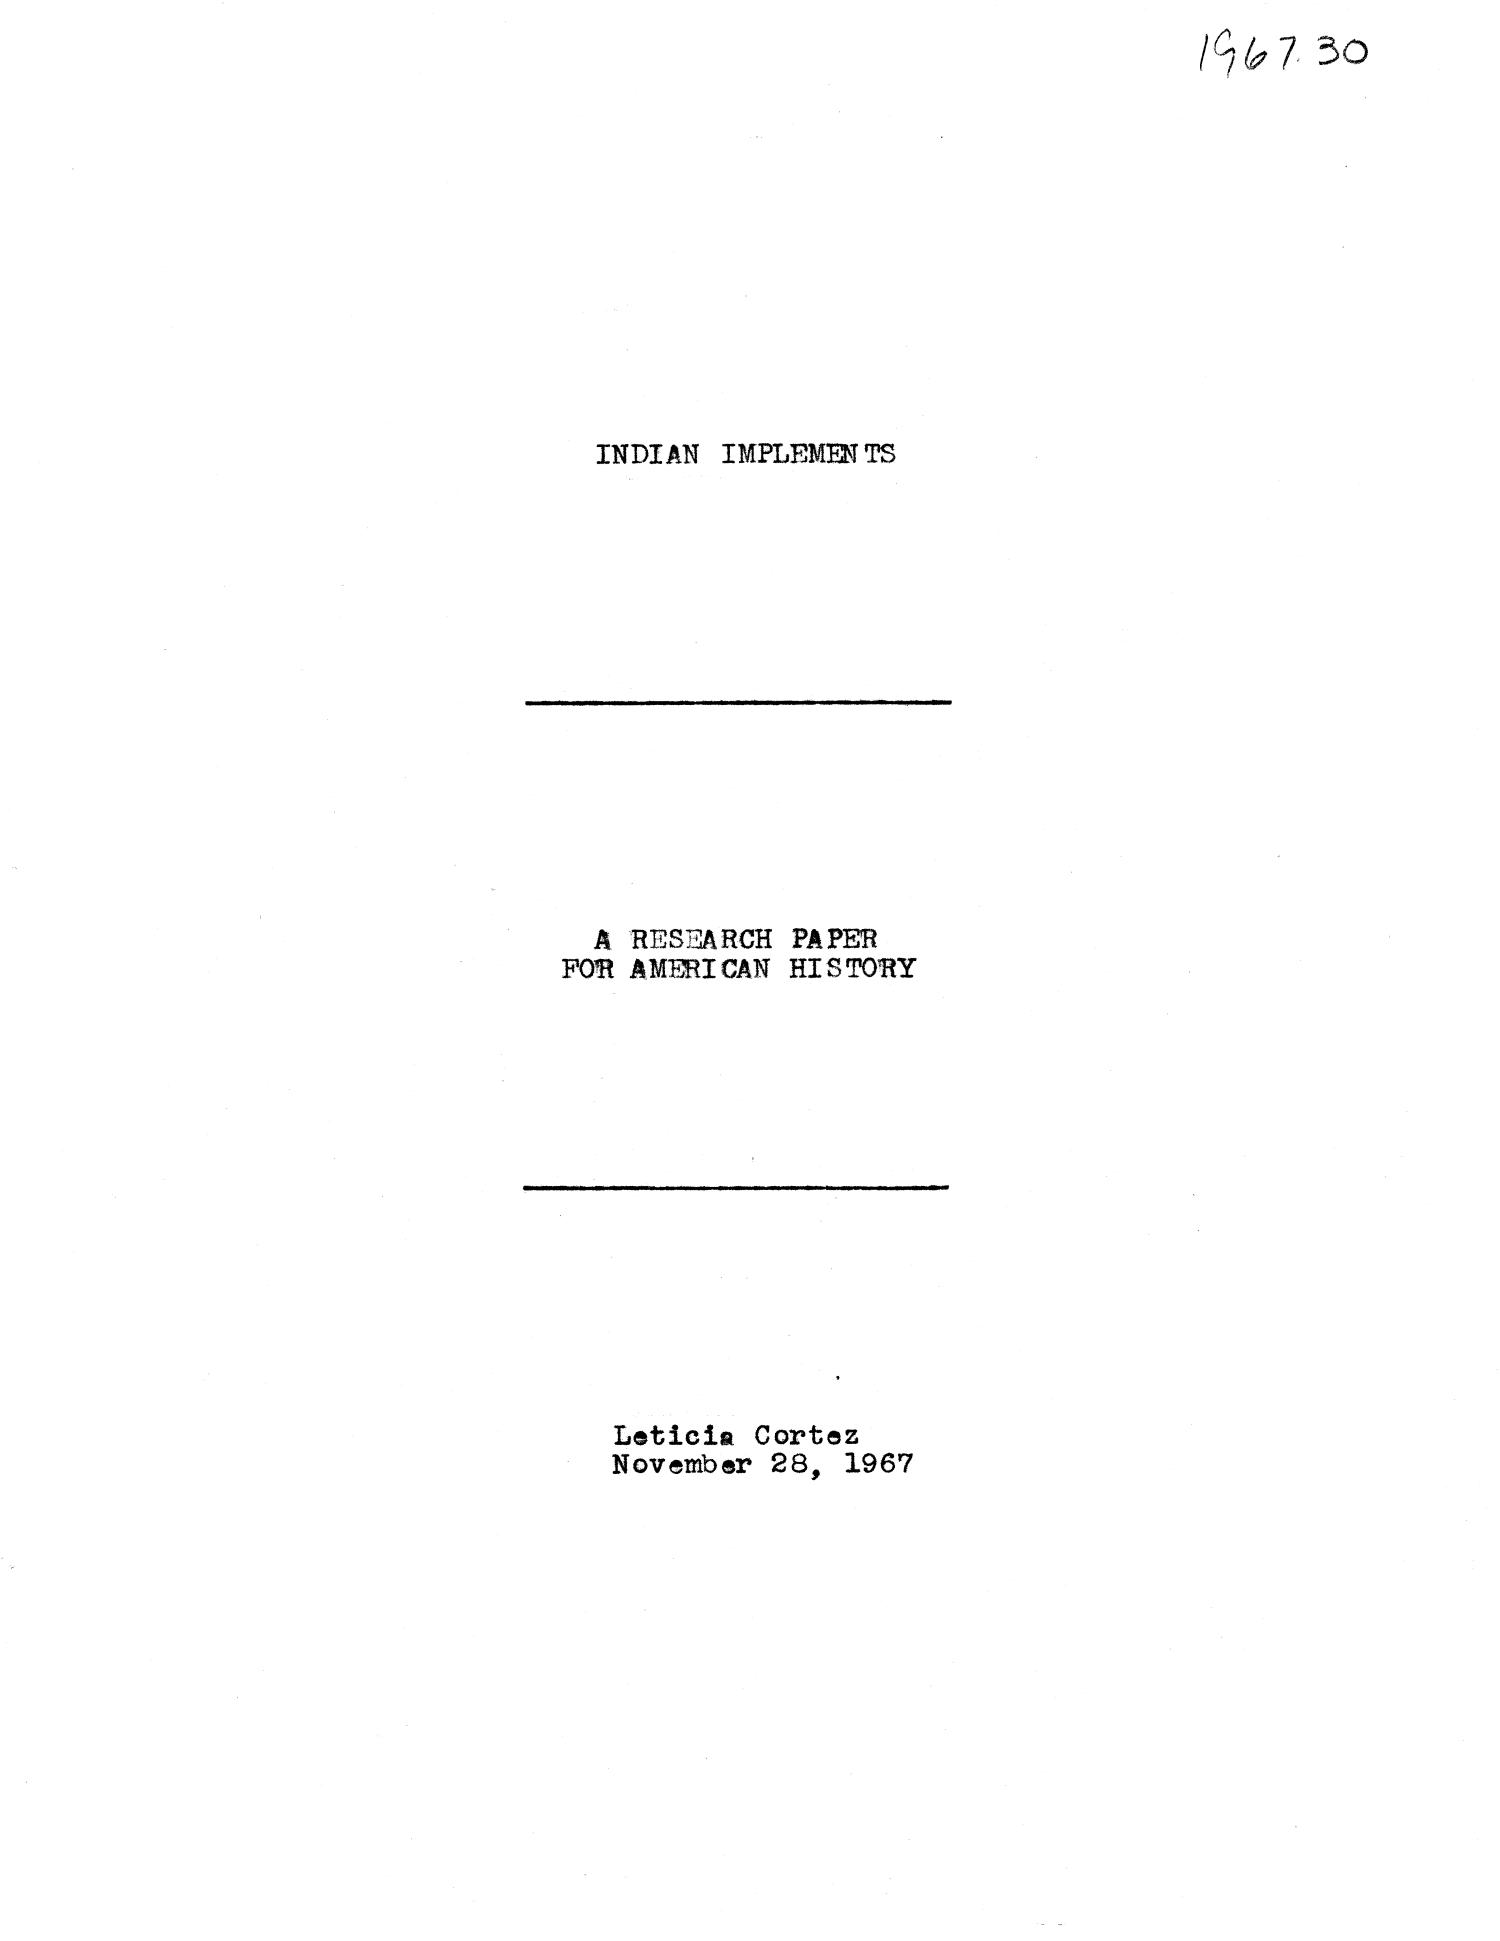 cover page format for research paper